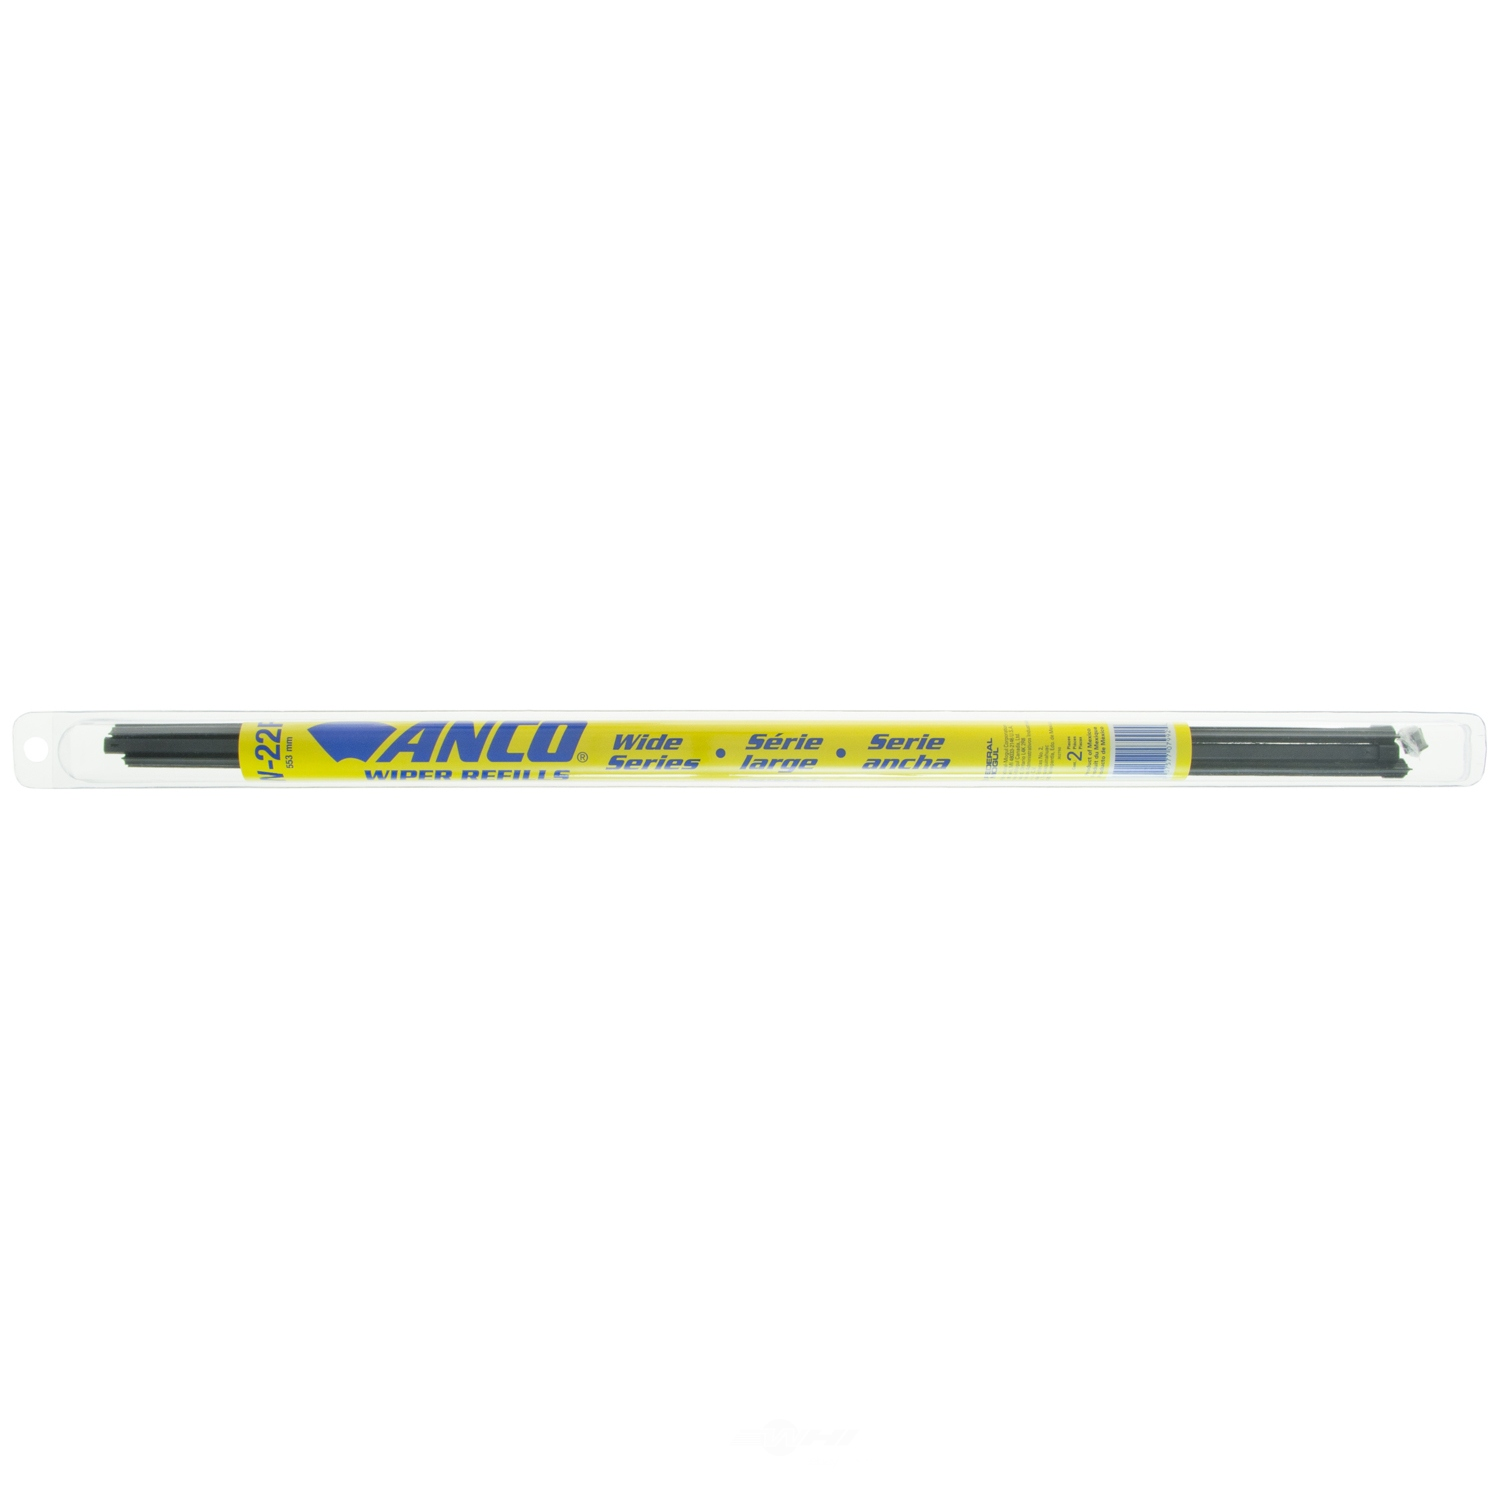 ANCO WIPER PRODUCTS - Wide Series Refills (Front) - ANC W-22R